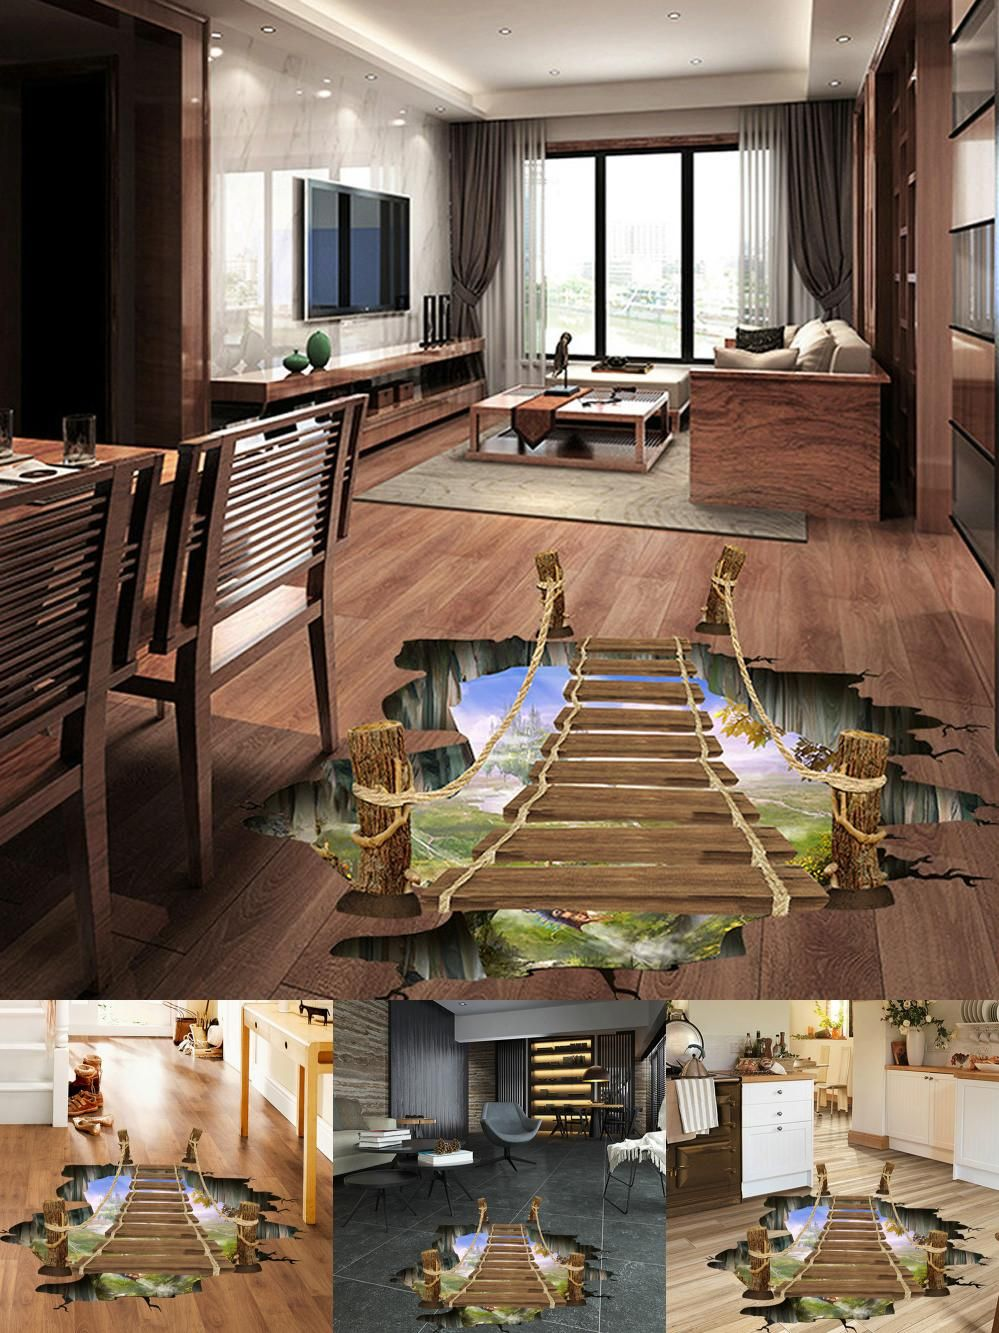 Visit To Buy 3d Bridge Floor Wall Stickers Removable Mural Decals